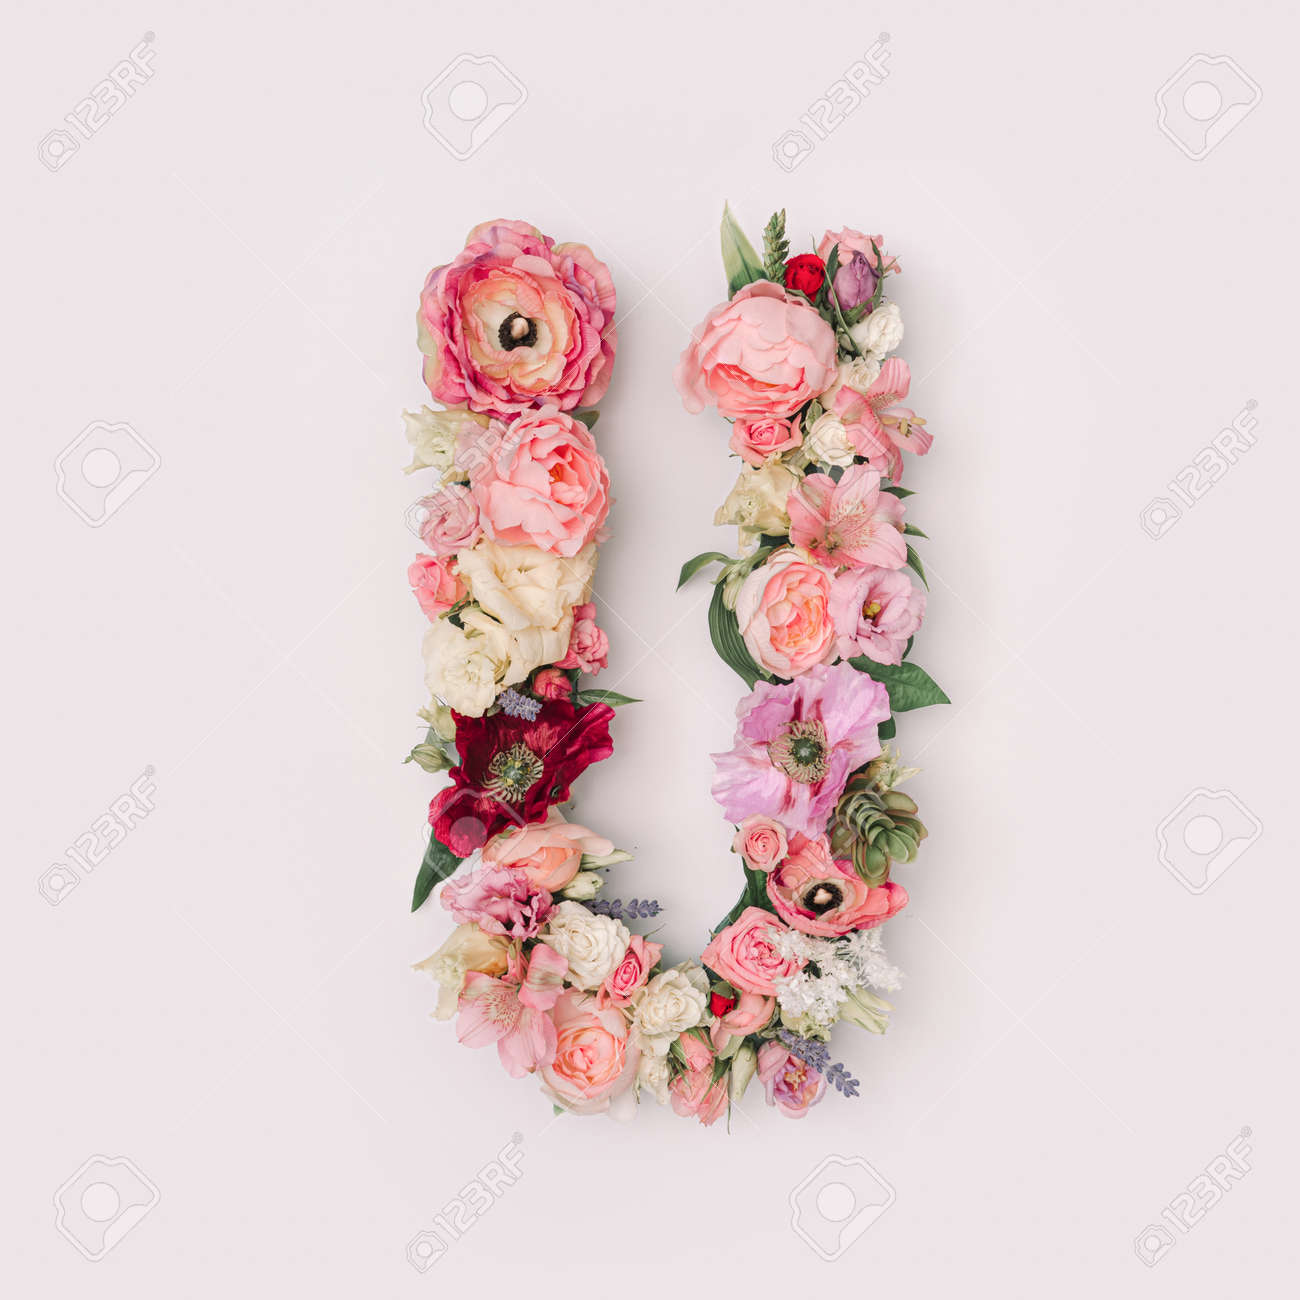 Letter U made of real natural flowers and leaves. Flower font concept. Unique collection of letters and numbers. Spring, summer and valentines creative idea. - 163345338